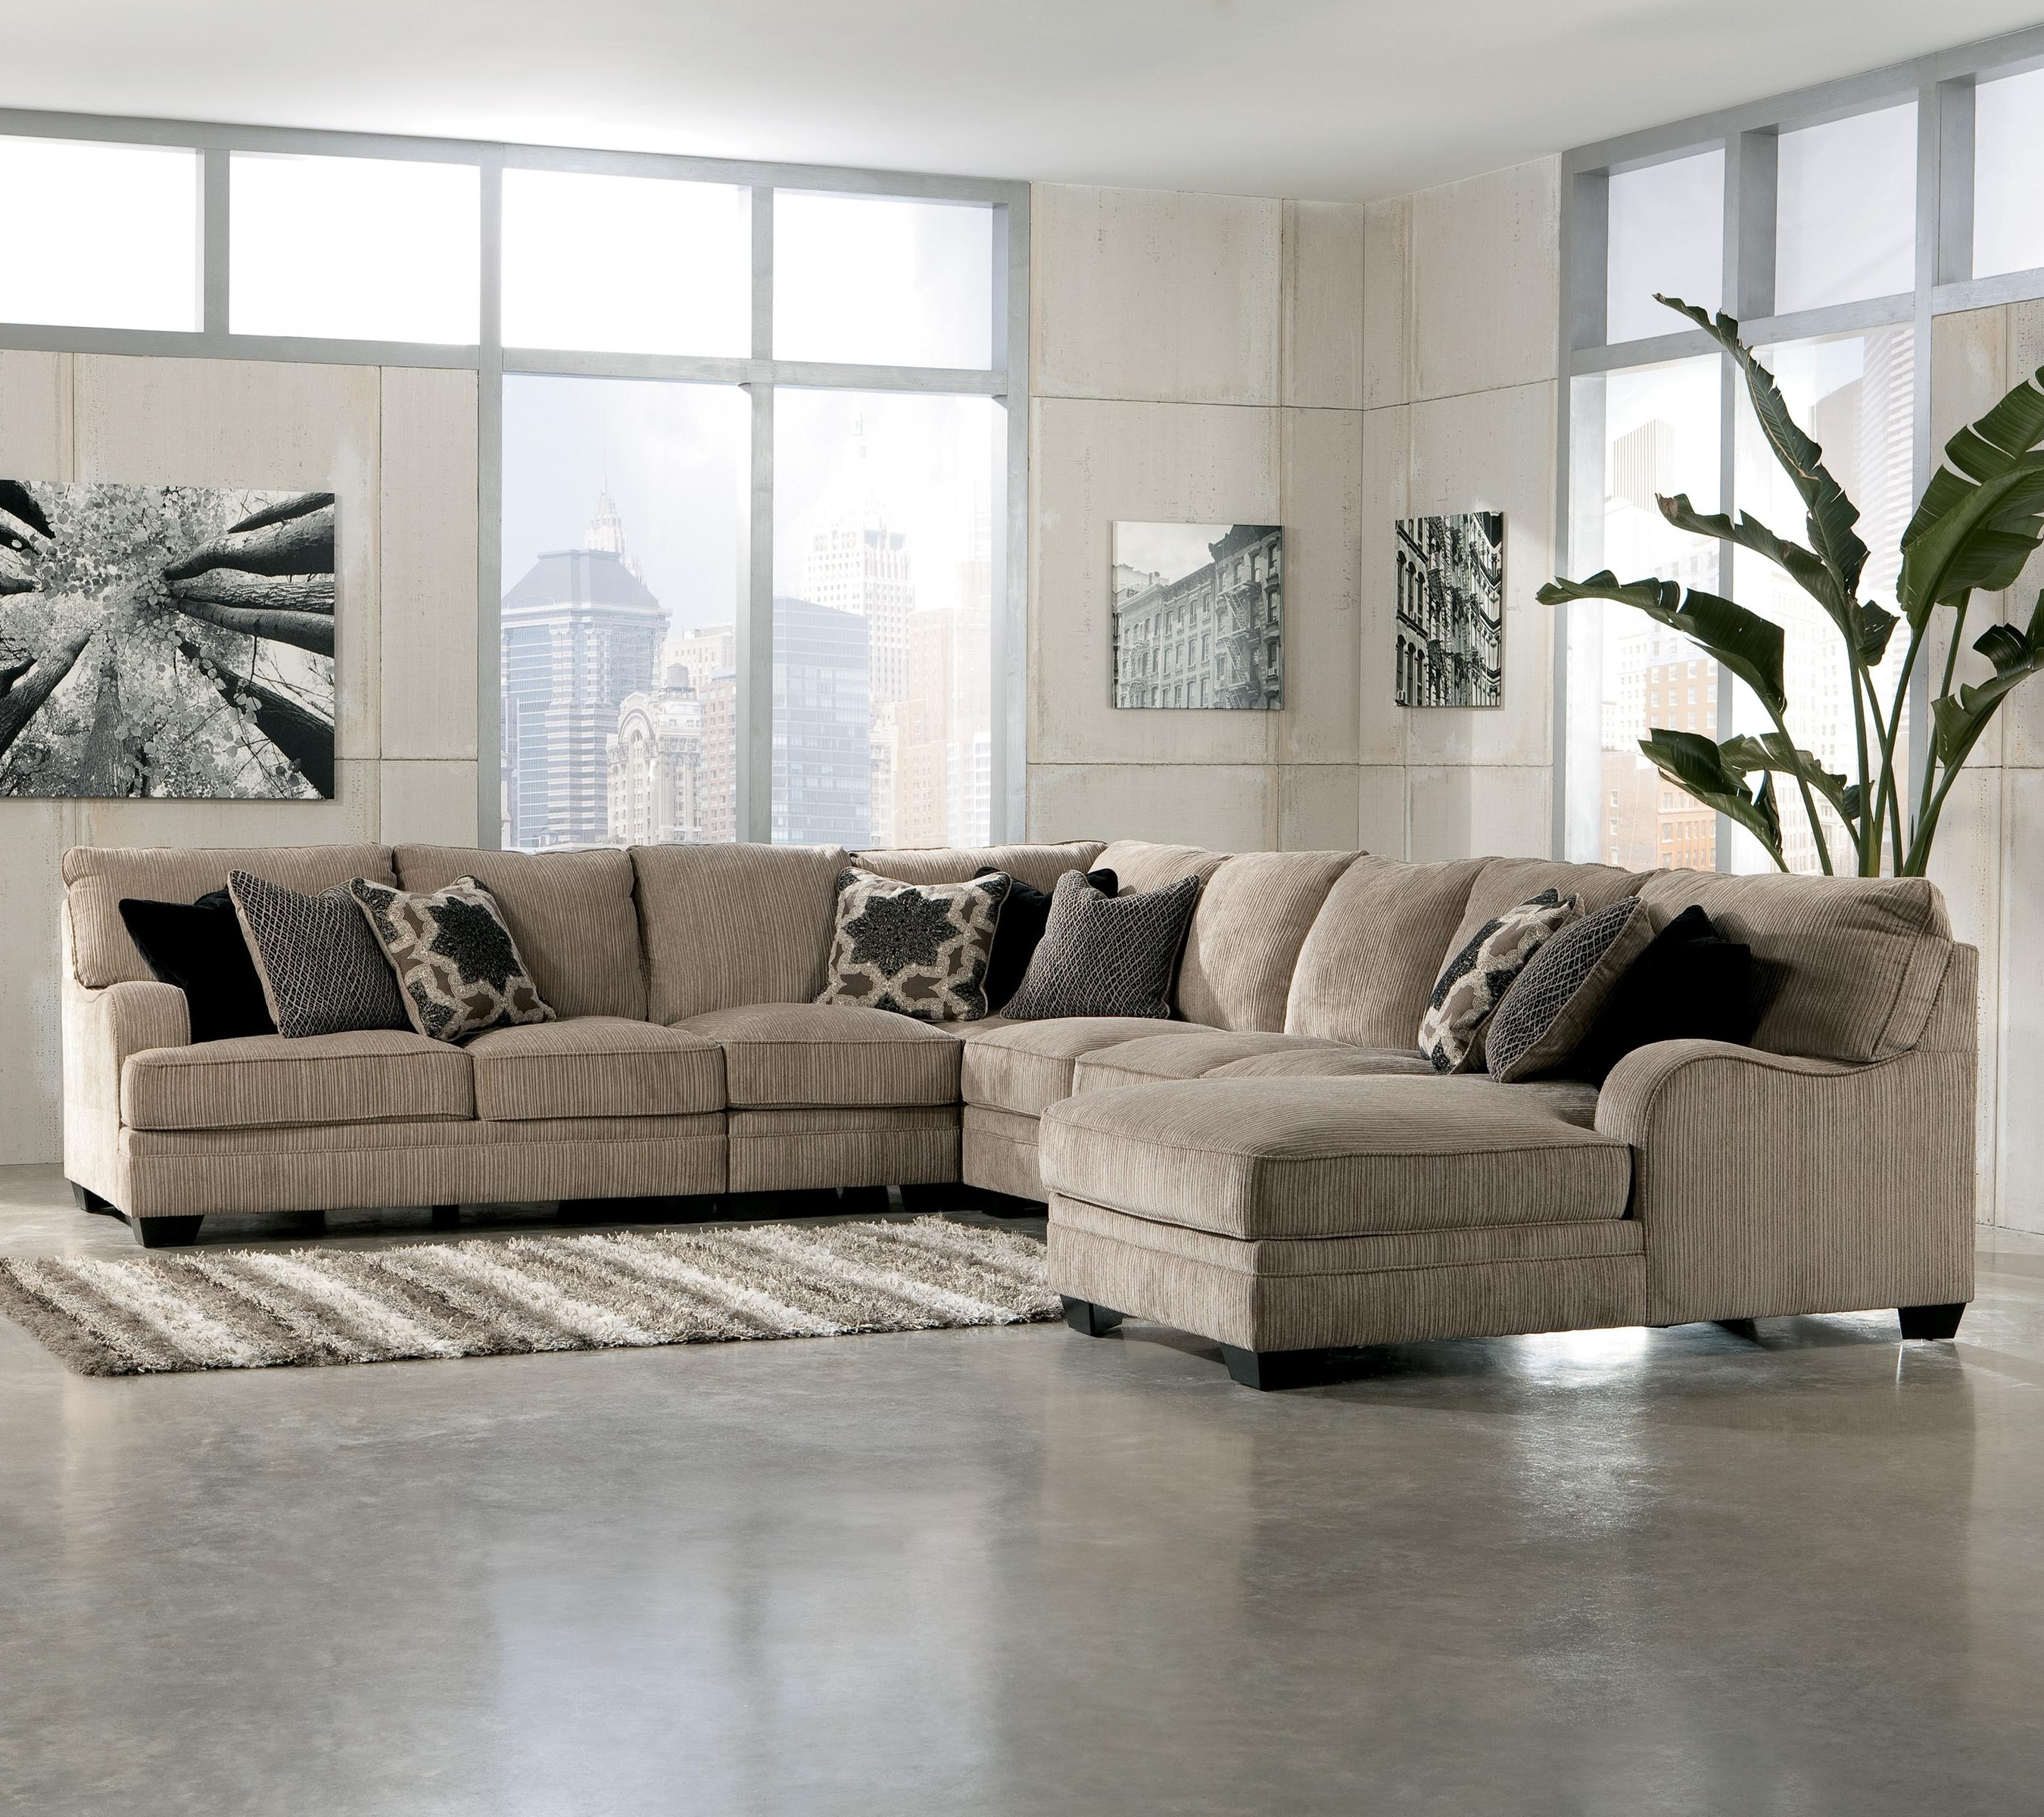 Preferred 4 Piece Sectional Sofas With Chaise Throughout Living Room Sectional: Katisha 4 Piece Sectionalashley (View 10 of 15)